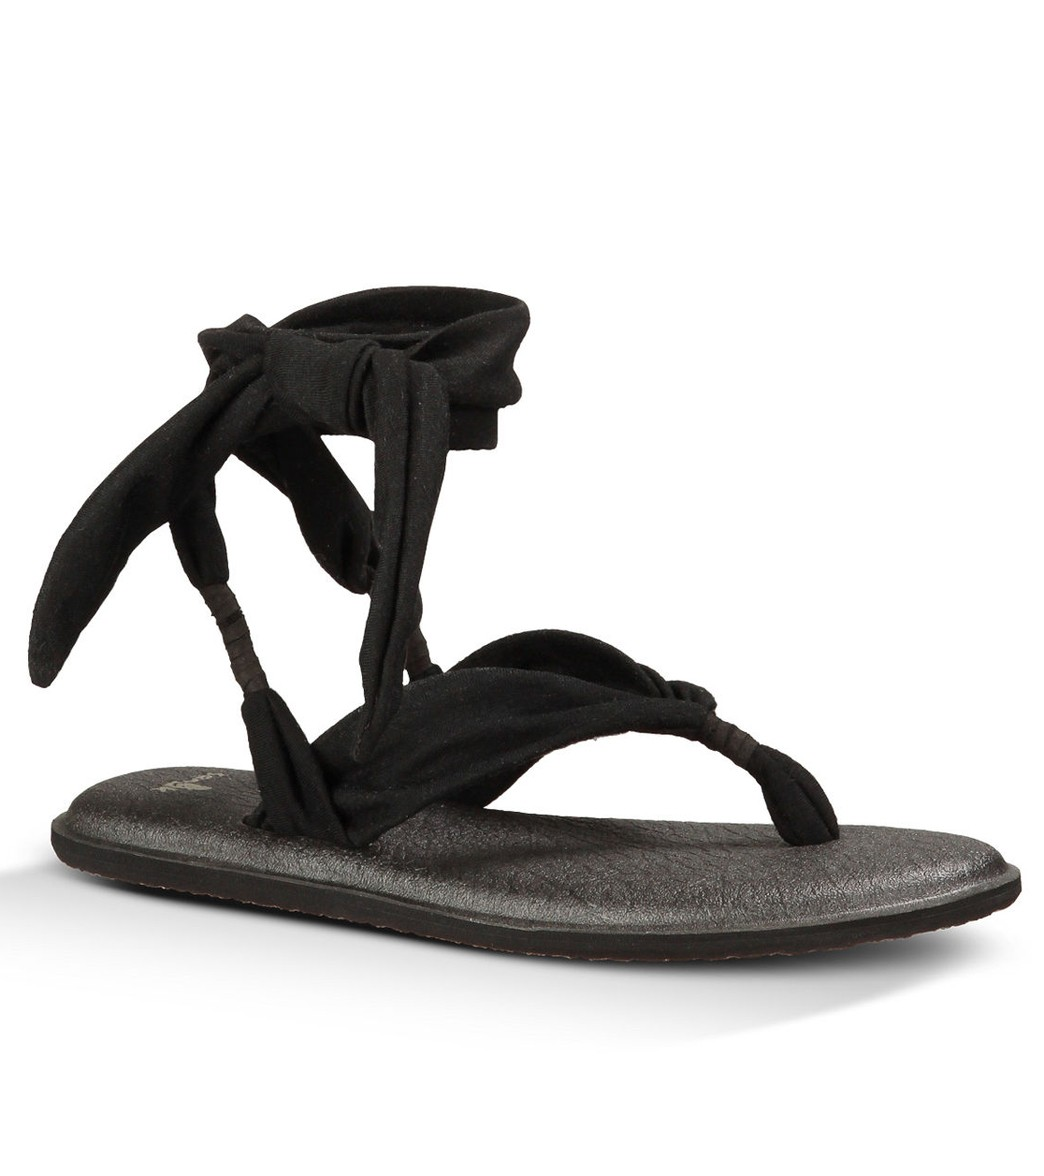 b53ea5804068 Sanuk Women s Yoga Slinged Up Sandal at SwimOutlet.com